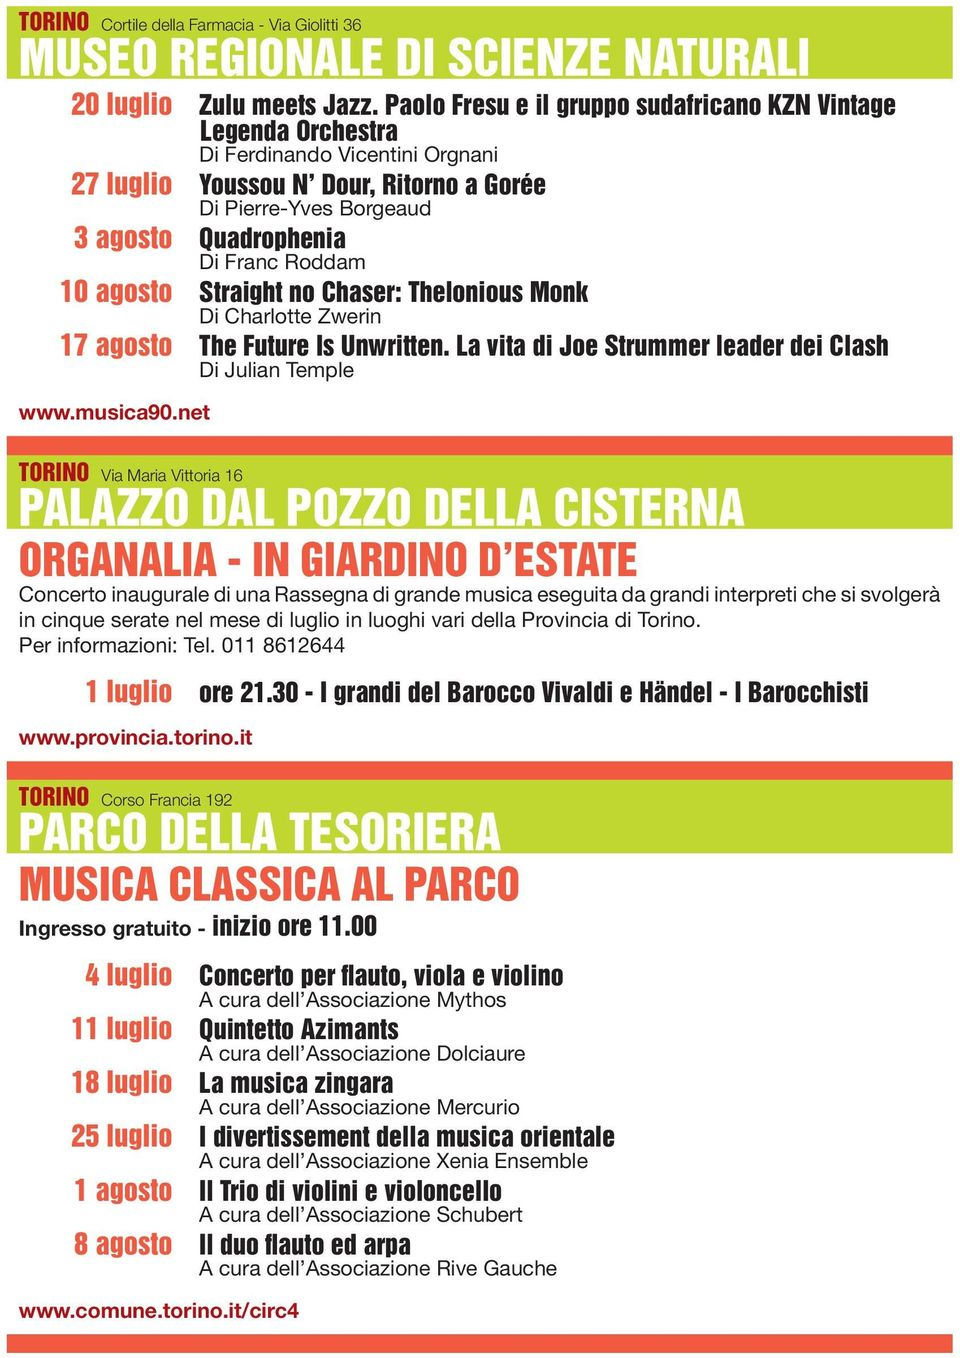 Roddam 10 agosto Straight no Chaser: Thelonious Monk Di Charlotte Zwerin 17 agosto The Future Is Unwritten. La vita di Joe Strummer leader dei Clash Di Julian Temple www.musica90.